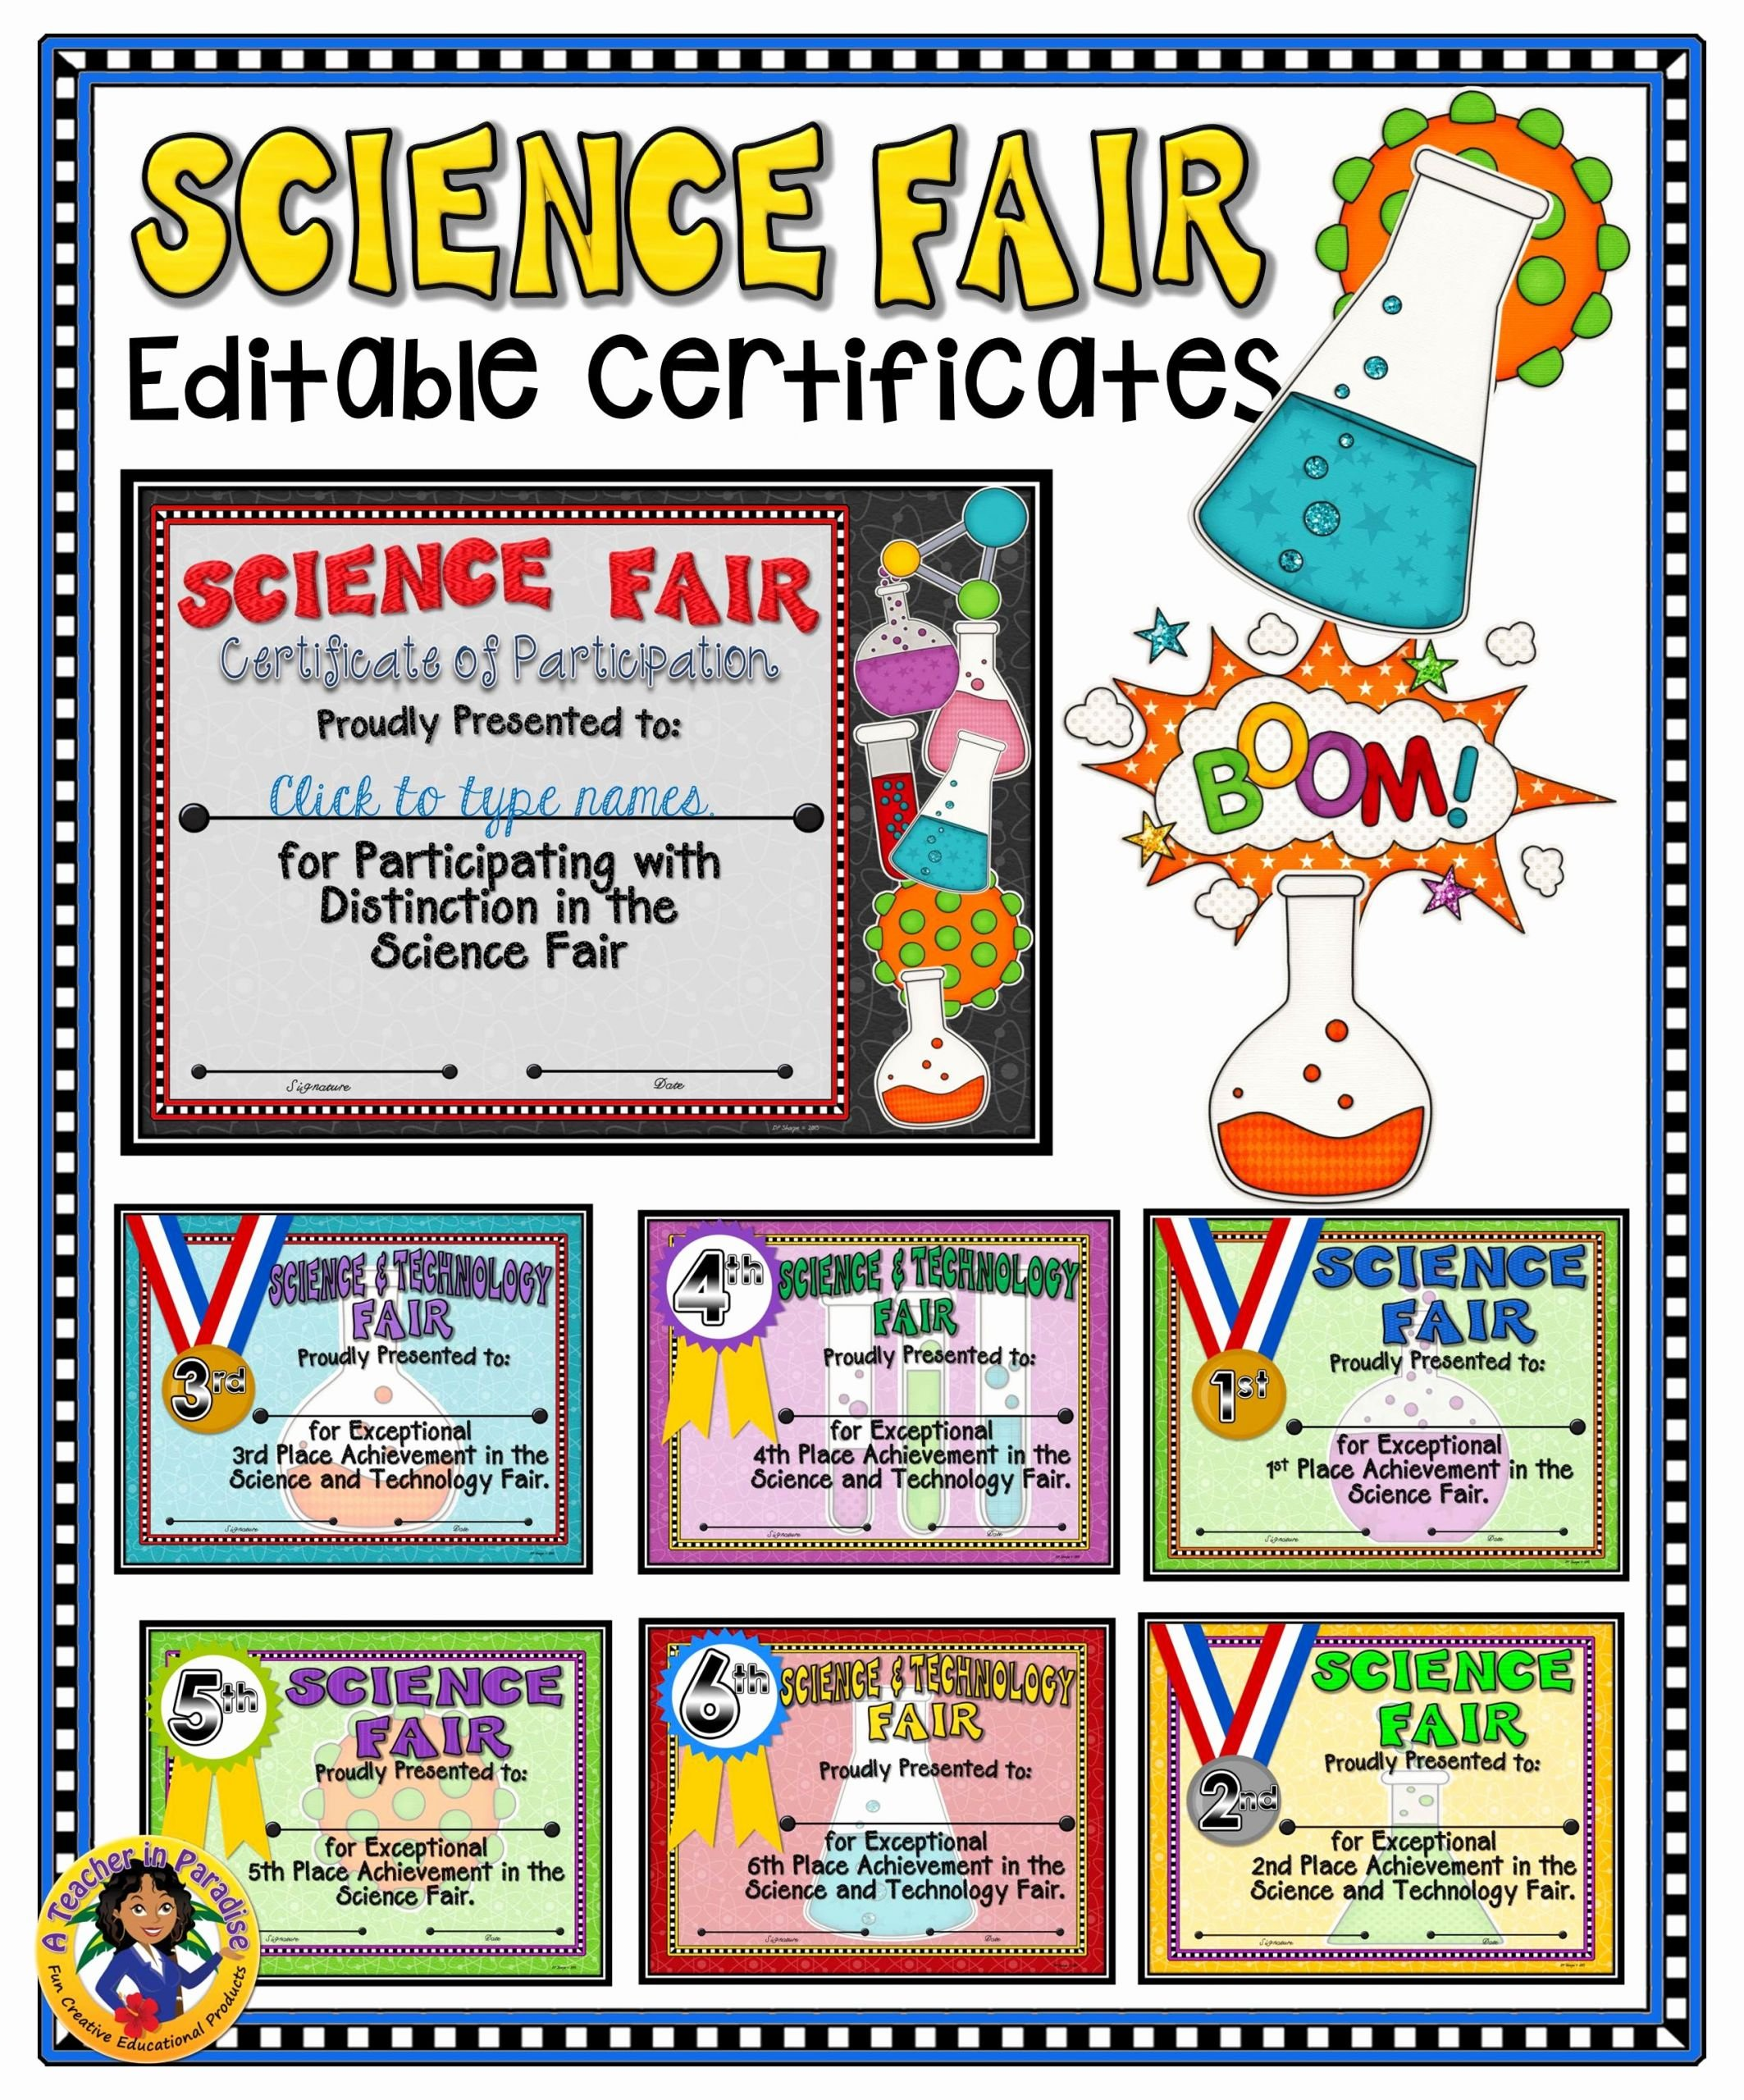 Science Fair Certificates Of Participation Luxury Science Fair Fillable Certificates